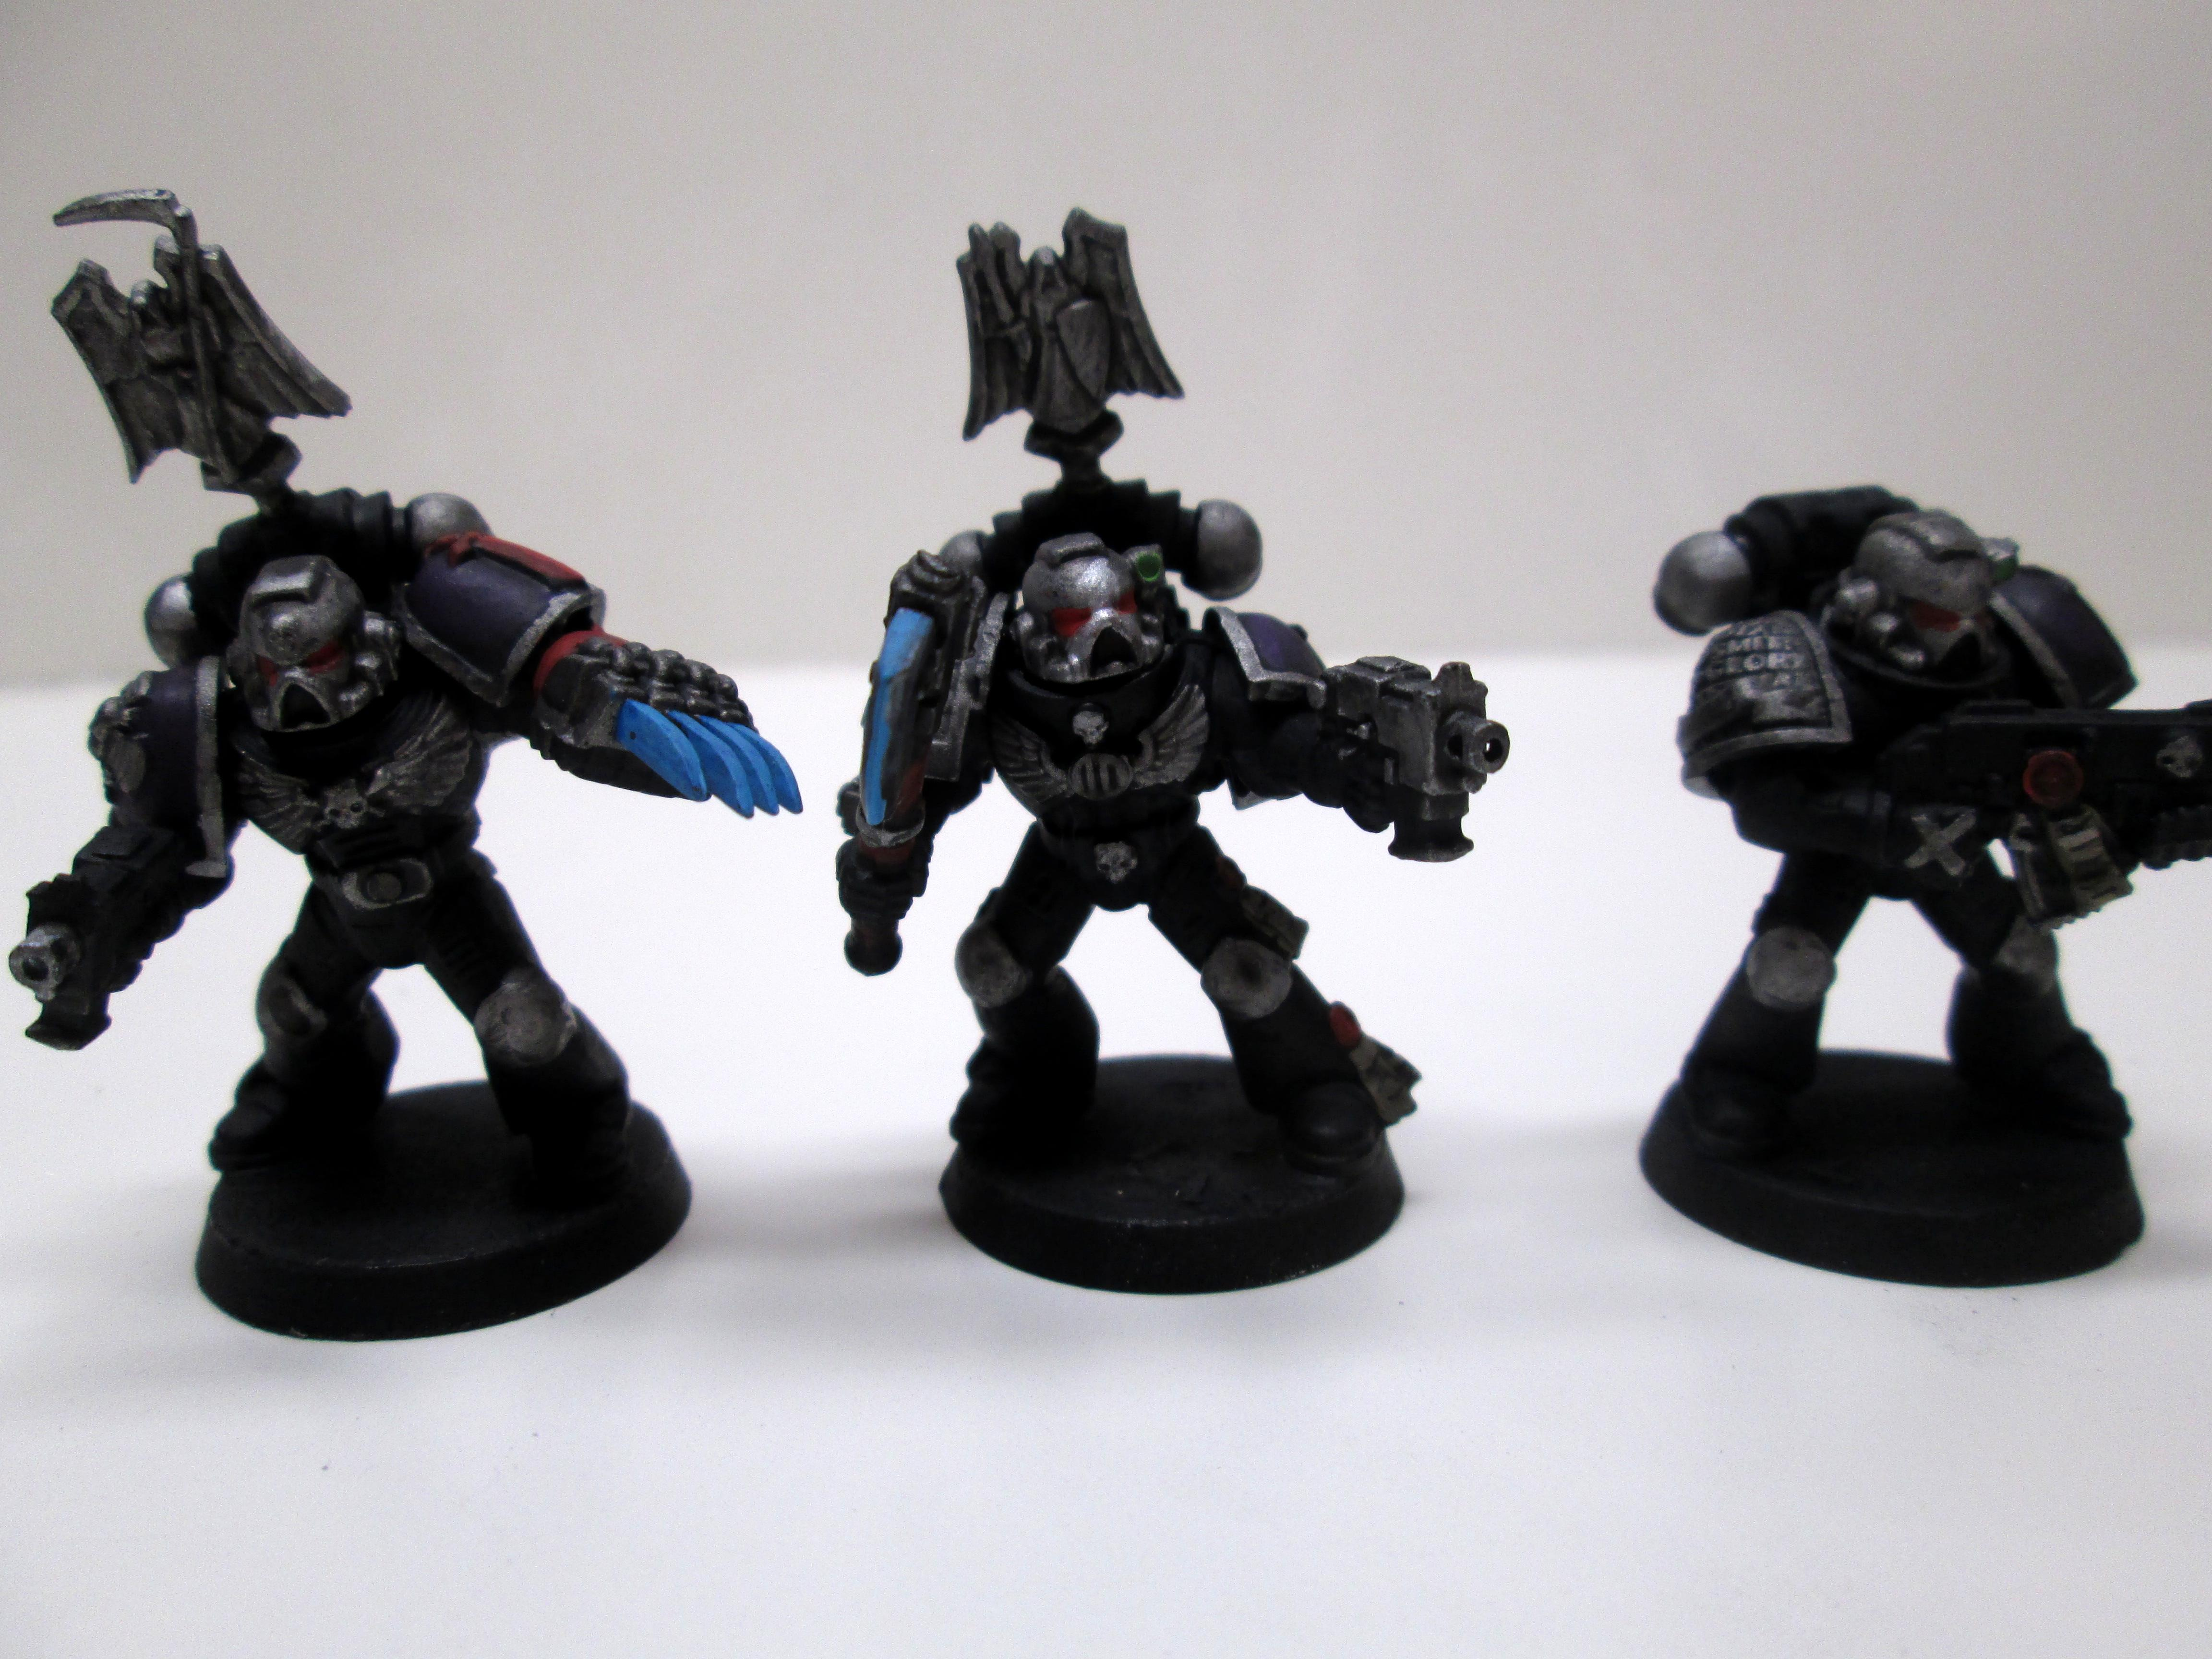 Bolter, Lightning Claw, Minis, Painted, Power Axe, Space Marines, Veteran, Warhammer 40,000